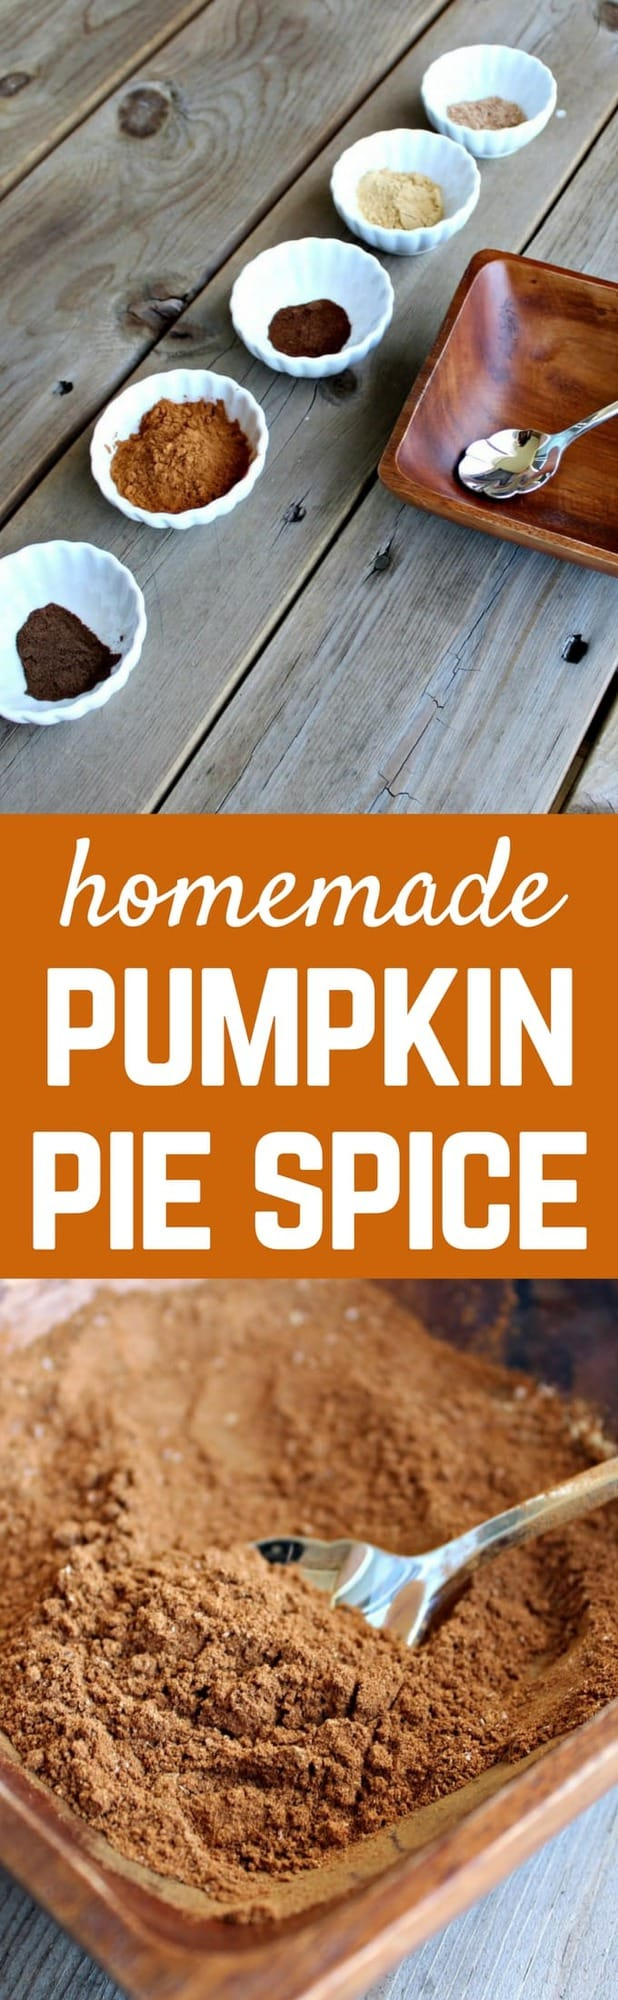 Once you try homemade pumpkin pie spice, you'll likely never go back to store-bought! It's easy to make with spices you already have in your cupboard. Get the recipe on RachelCooks.com!